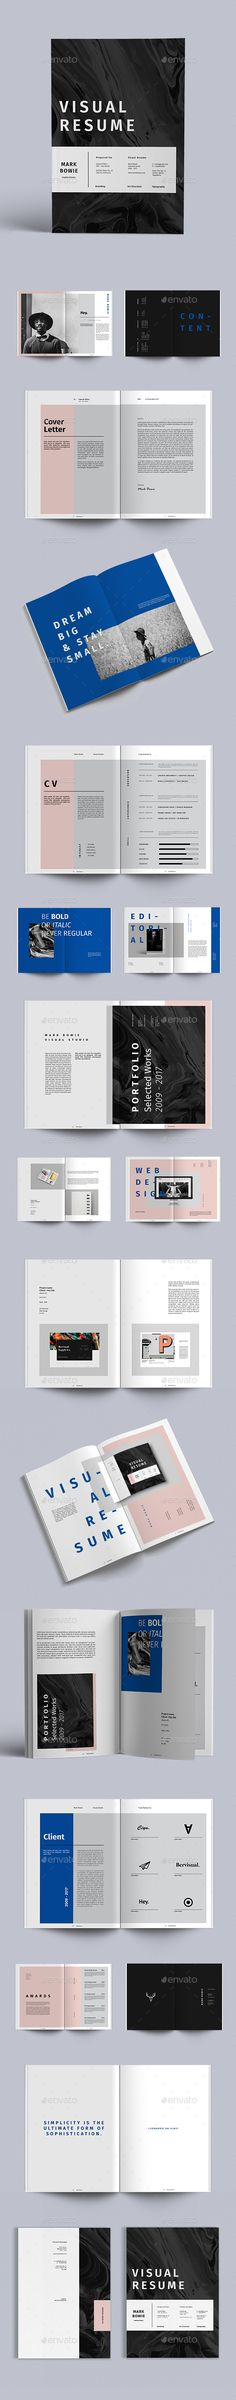 Visual Resume — InDesign INDD #print template • Download ➝ https://graphicriver.net/item/visual-resume/19081386?ref=pxcr